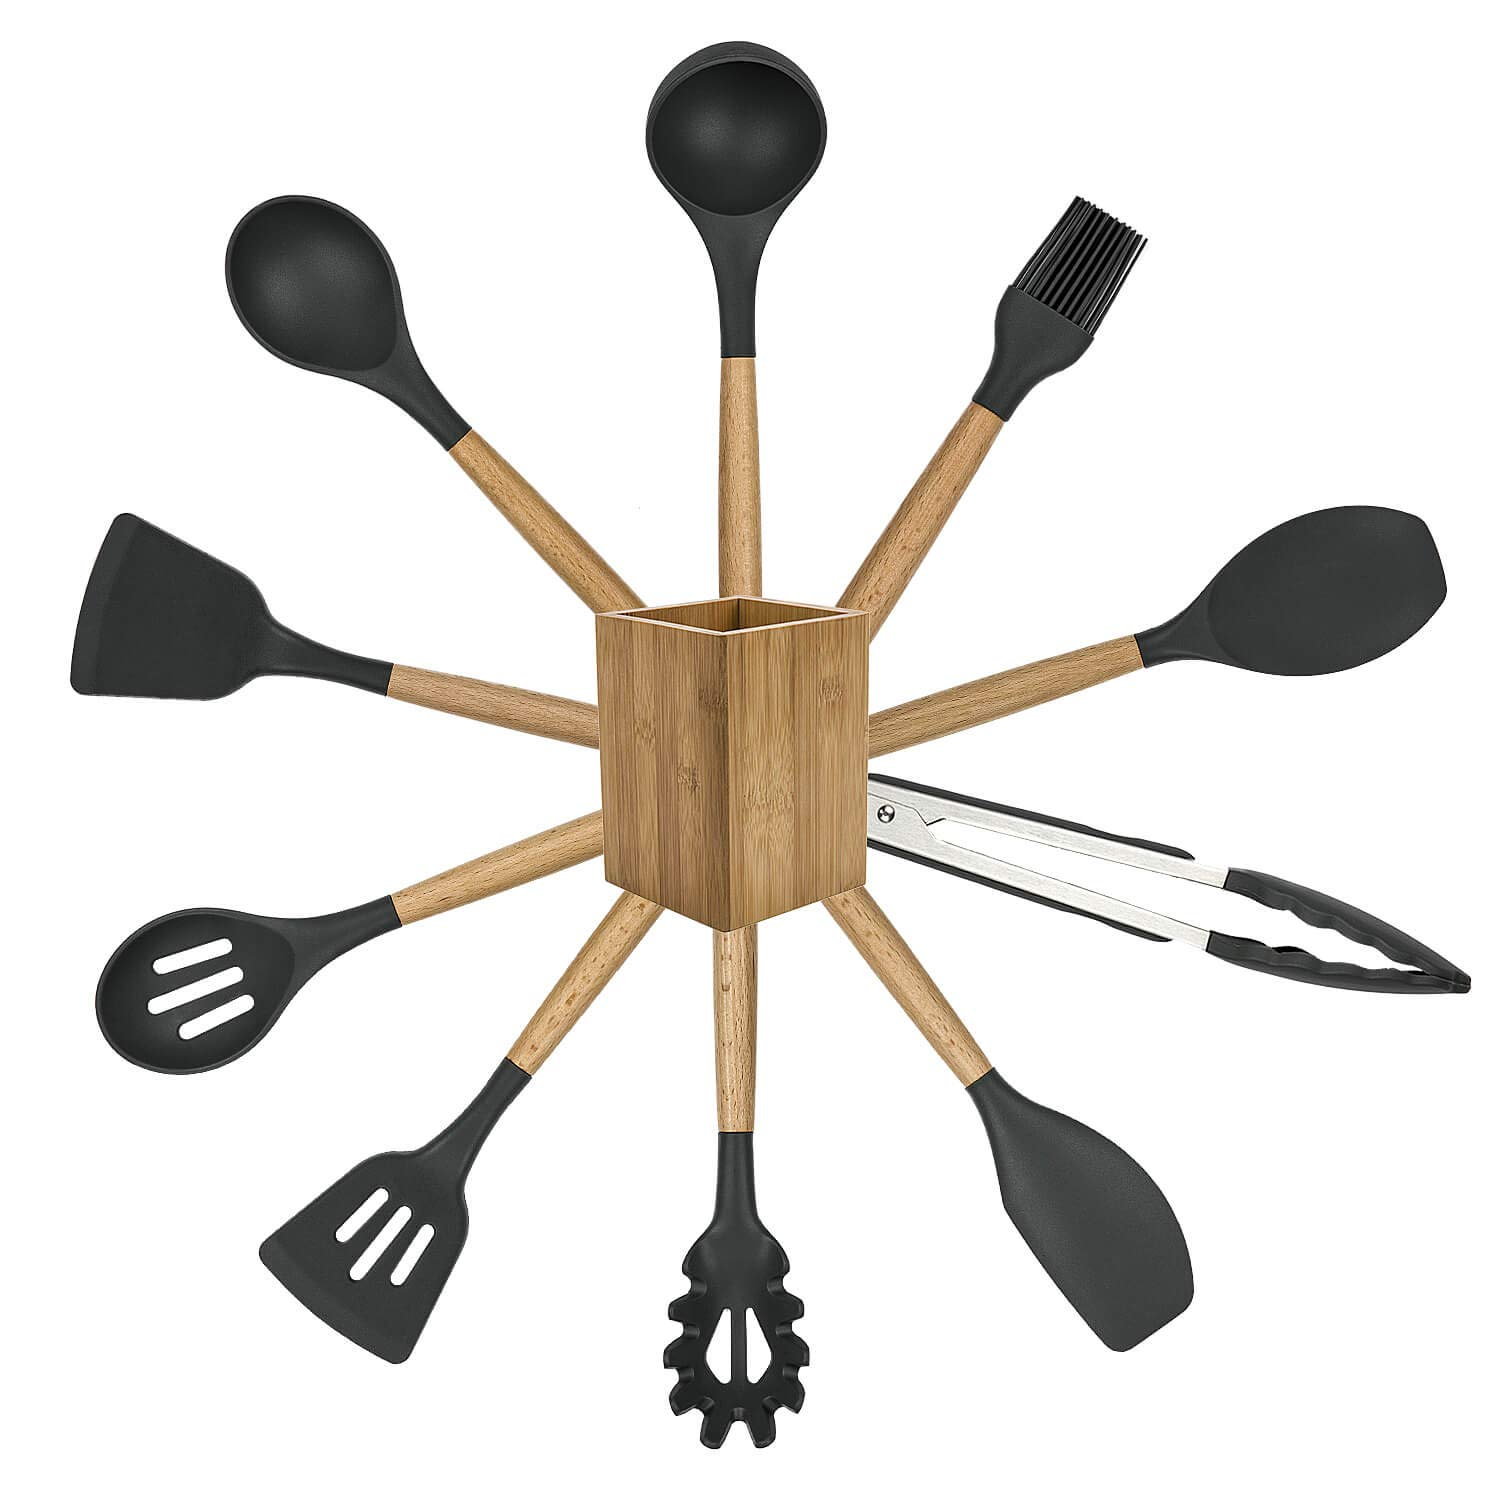 POENSCAE Kitchen Utensils,Silicone Cooking Utensils Set,11-Piece with wood Handles for Non-Stick and Heat Resistant Cookware Set FDA Approved and BPA Free-Great Holiday Gift